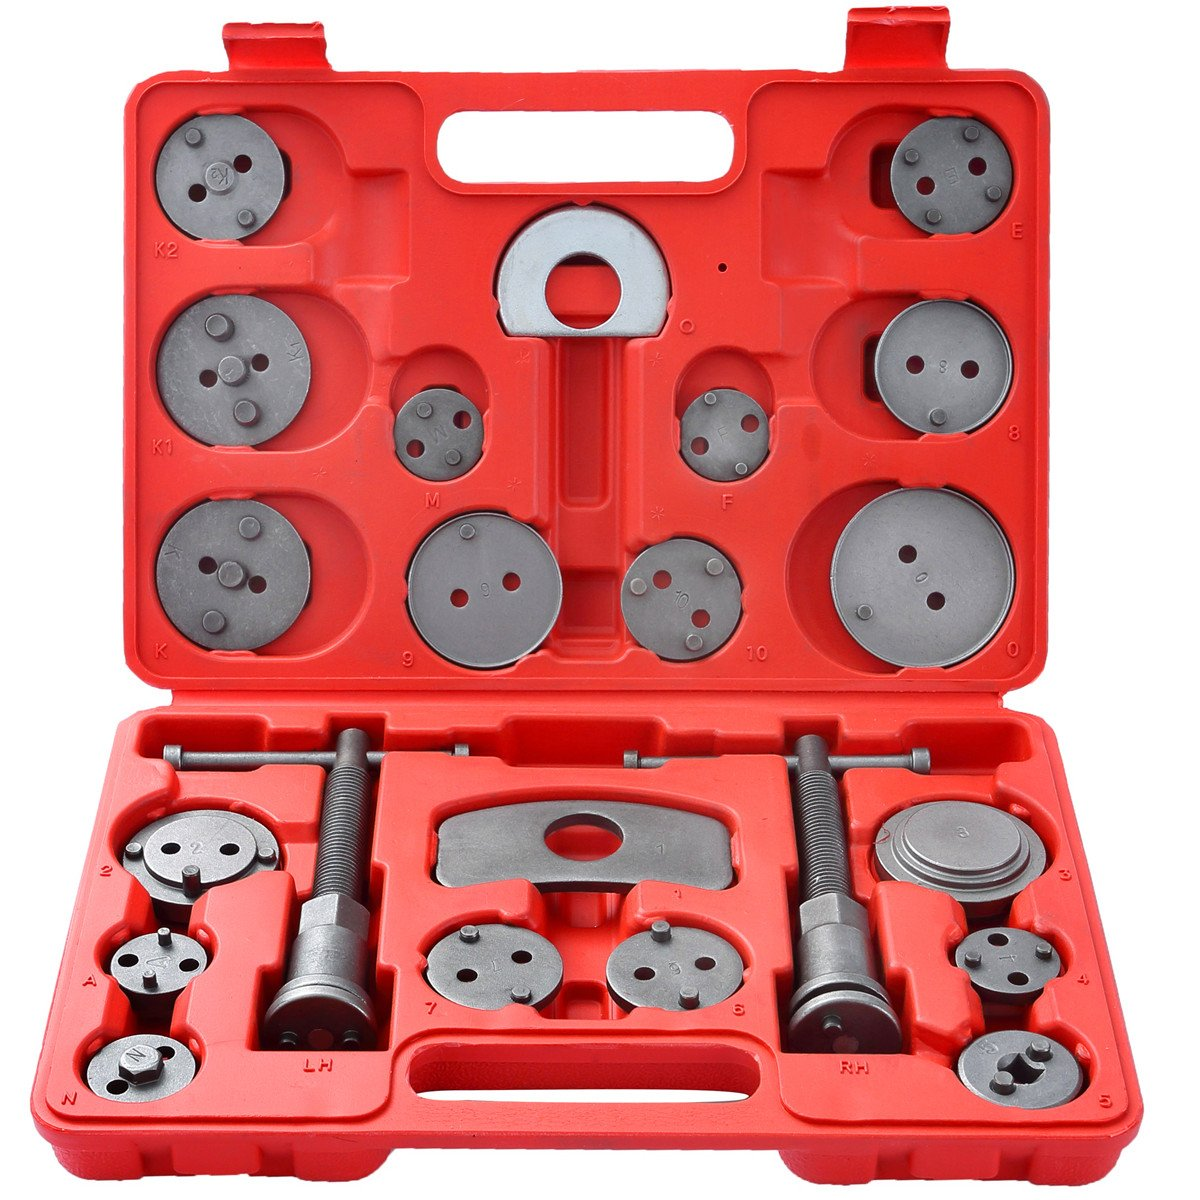 DASBET 22pcs Universal Disc Brake Caliper Piston Compressor Wind Back Repair Tool Kit for Cars by DASBET (Image #1)